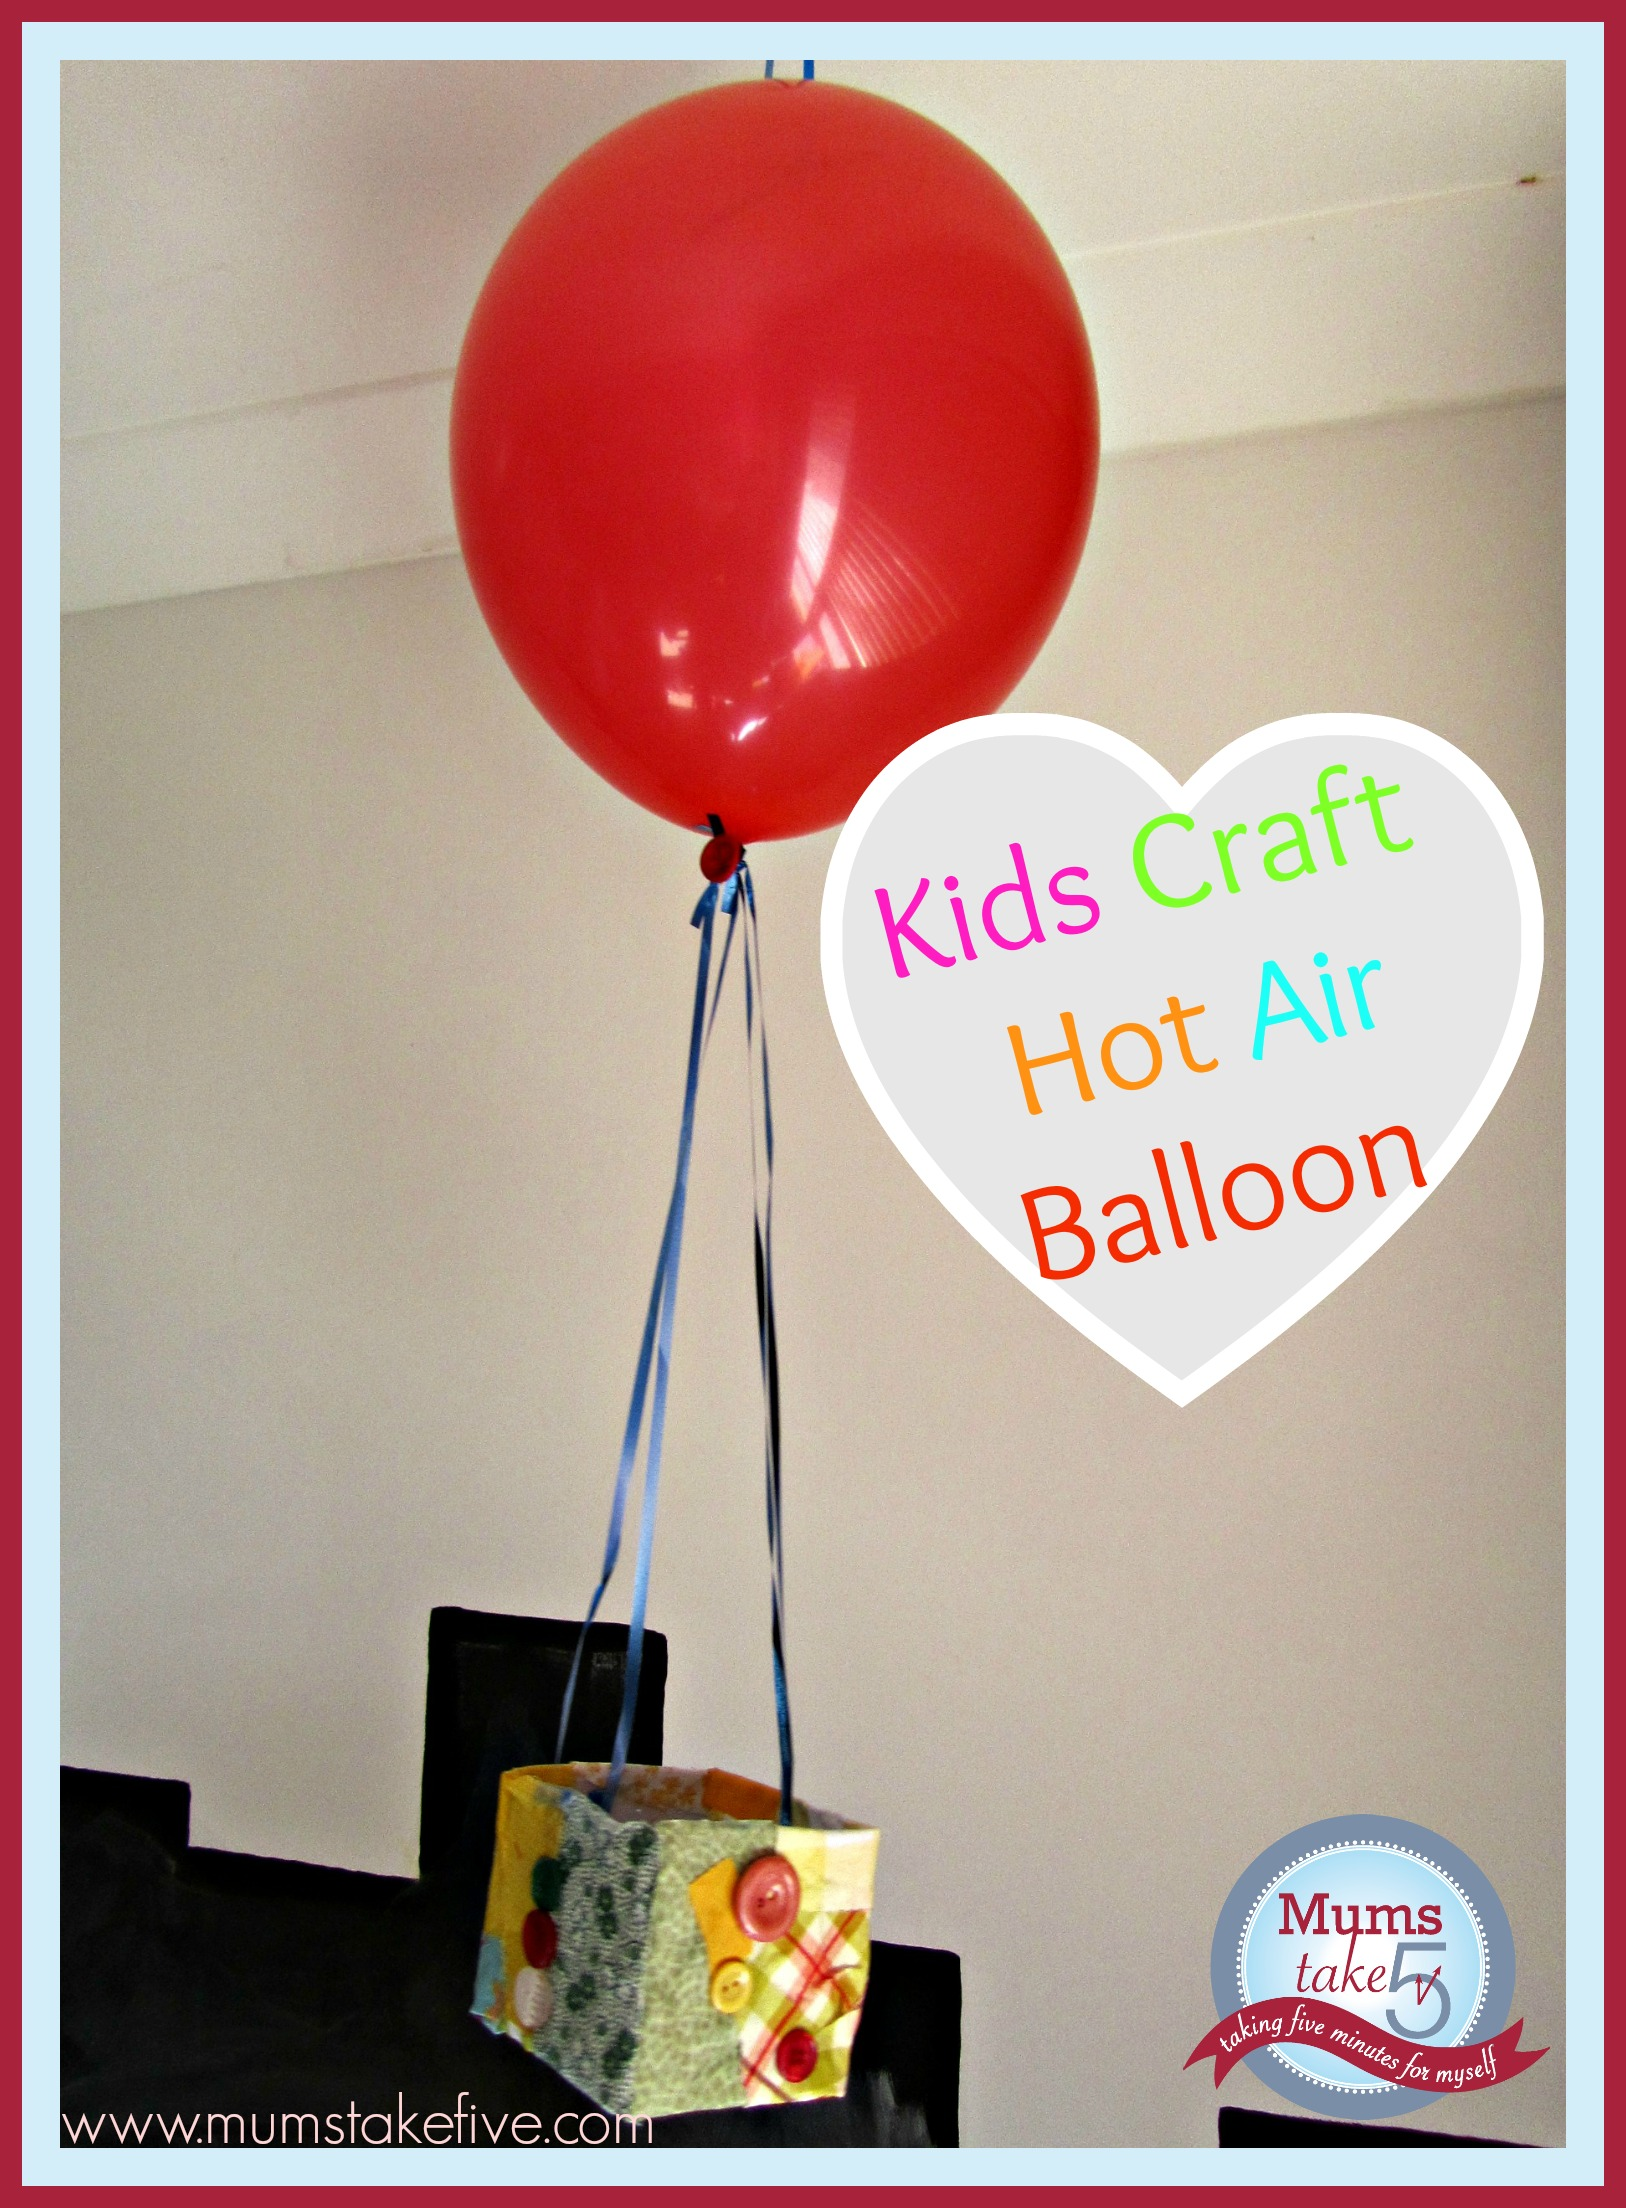 Peppa Pig Kids craft hot air balloon